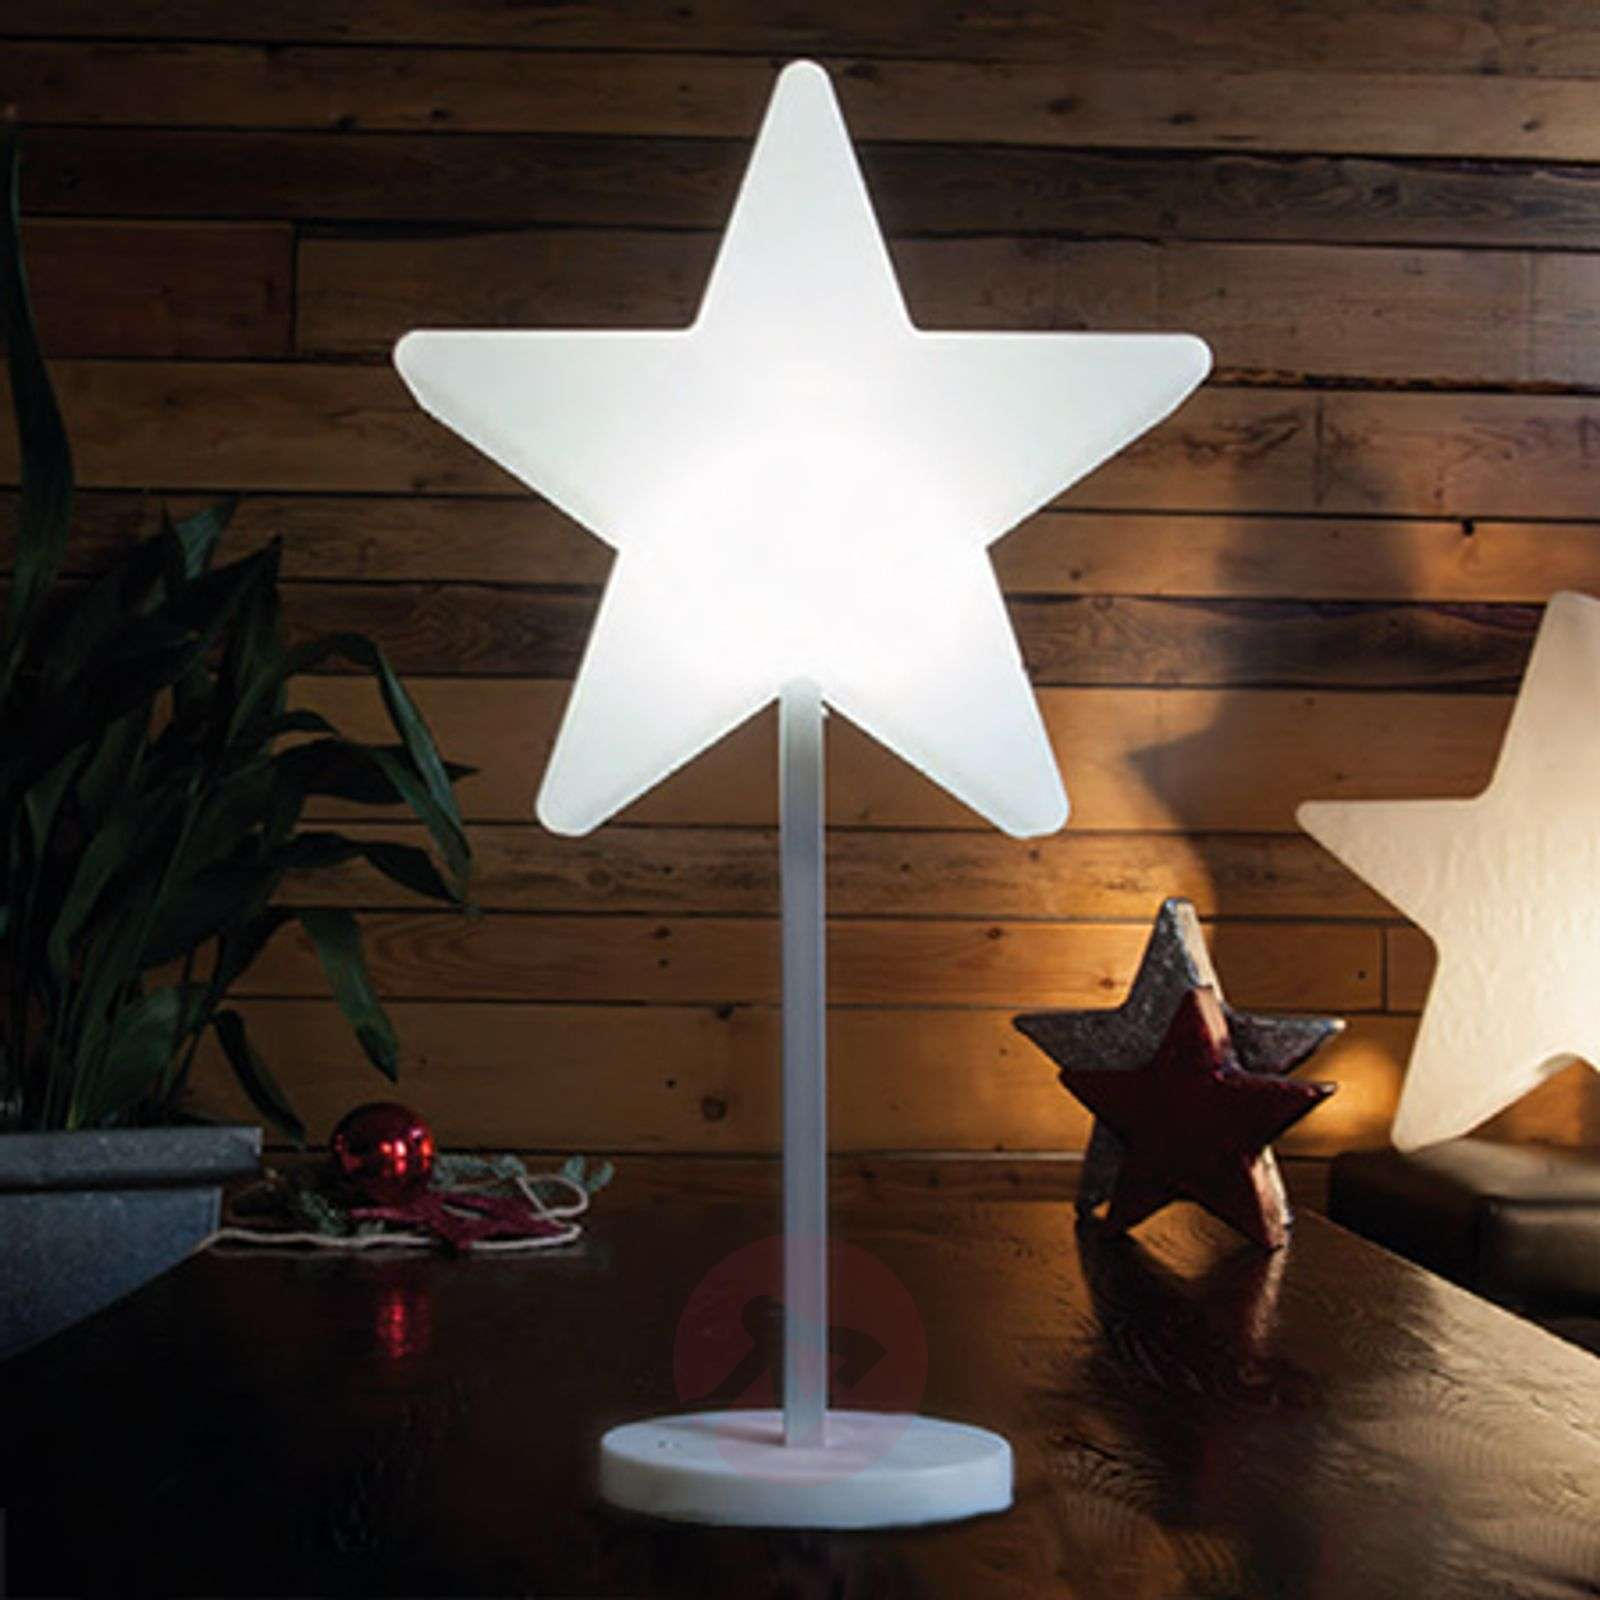 Lampada decorativa a LED Shining Window Star-1004095-01